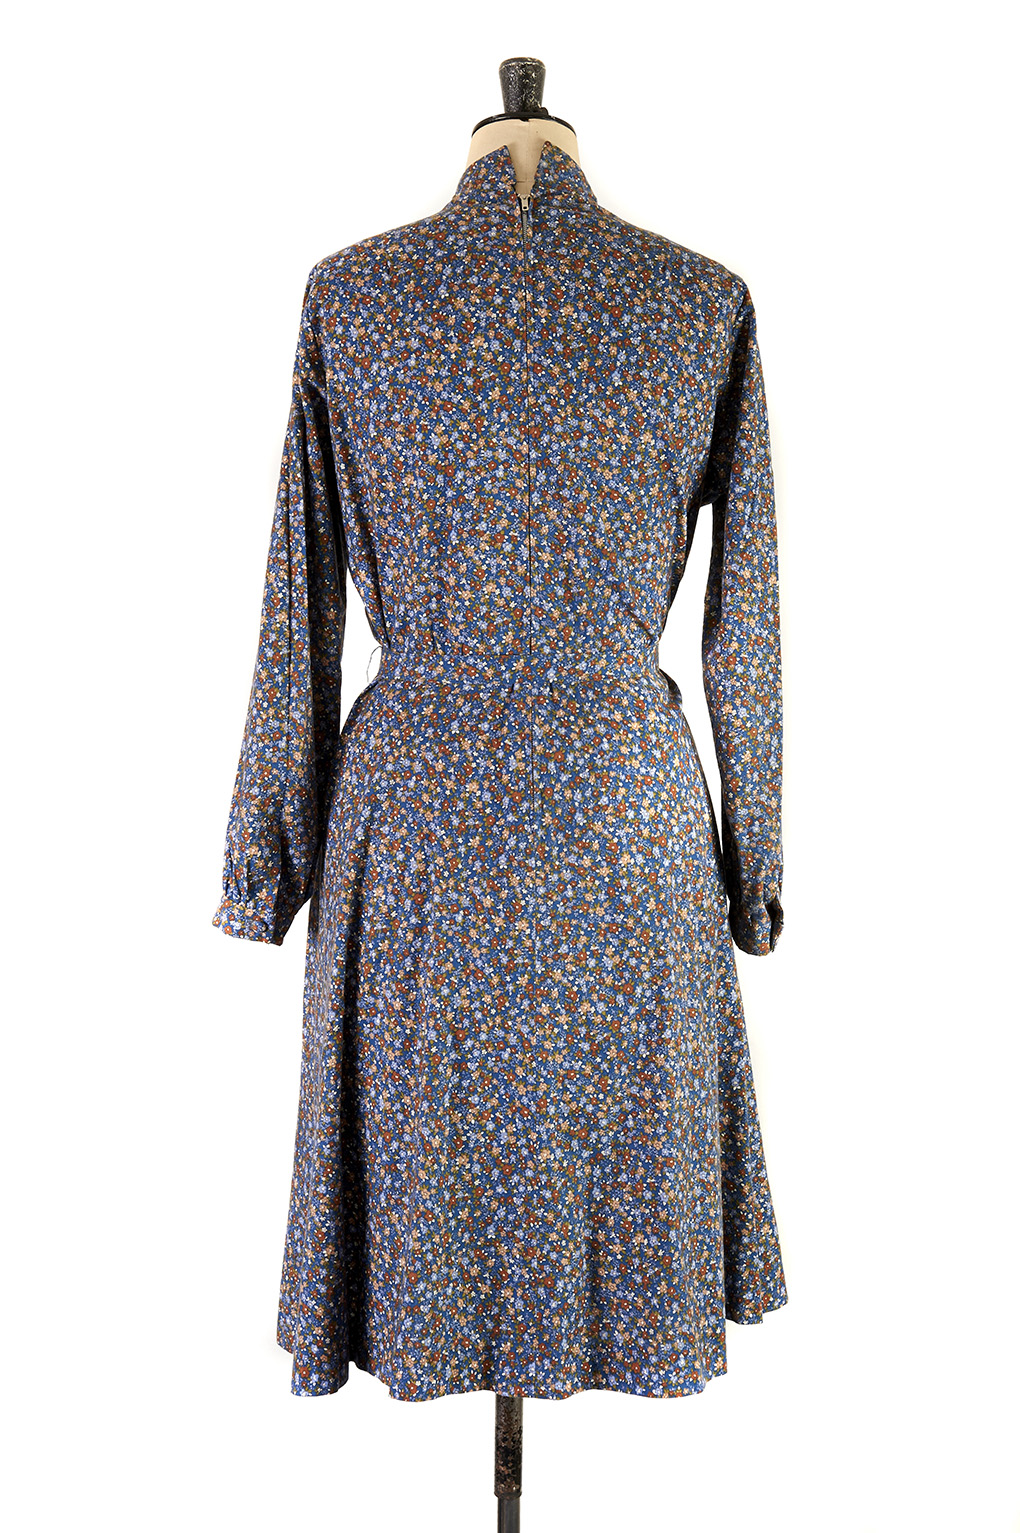 Warm Floral Dress by Margot and Hesse